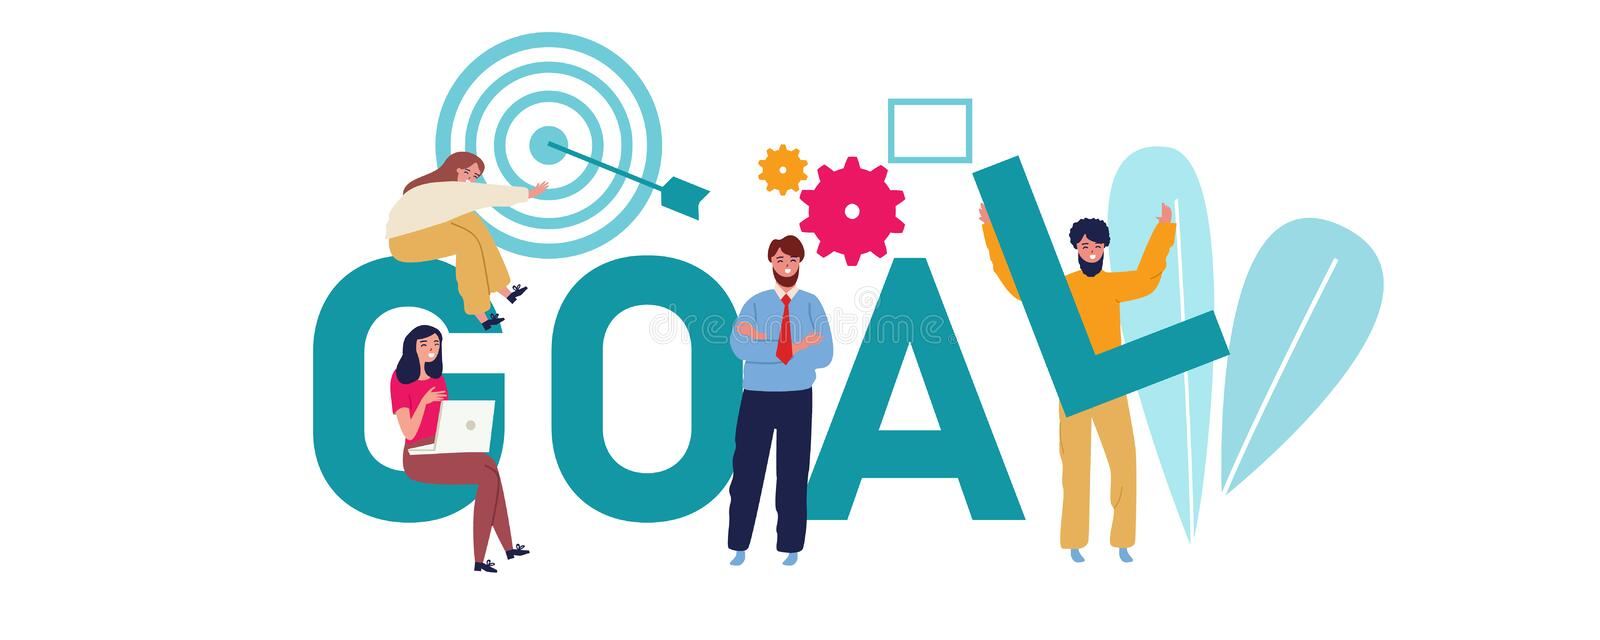 Goal concept businessman aiming the target. Team work together to achieve target illustration. stock illustration